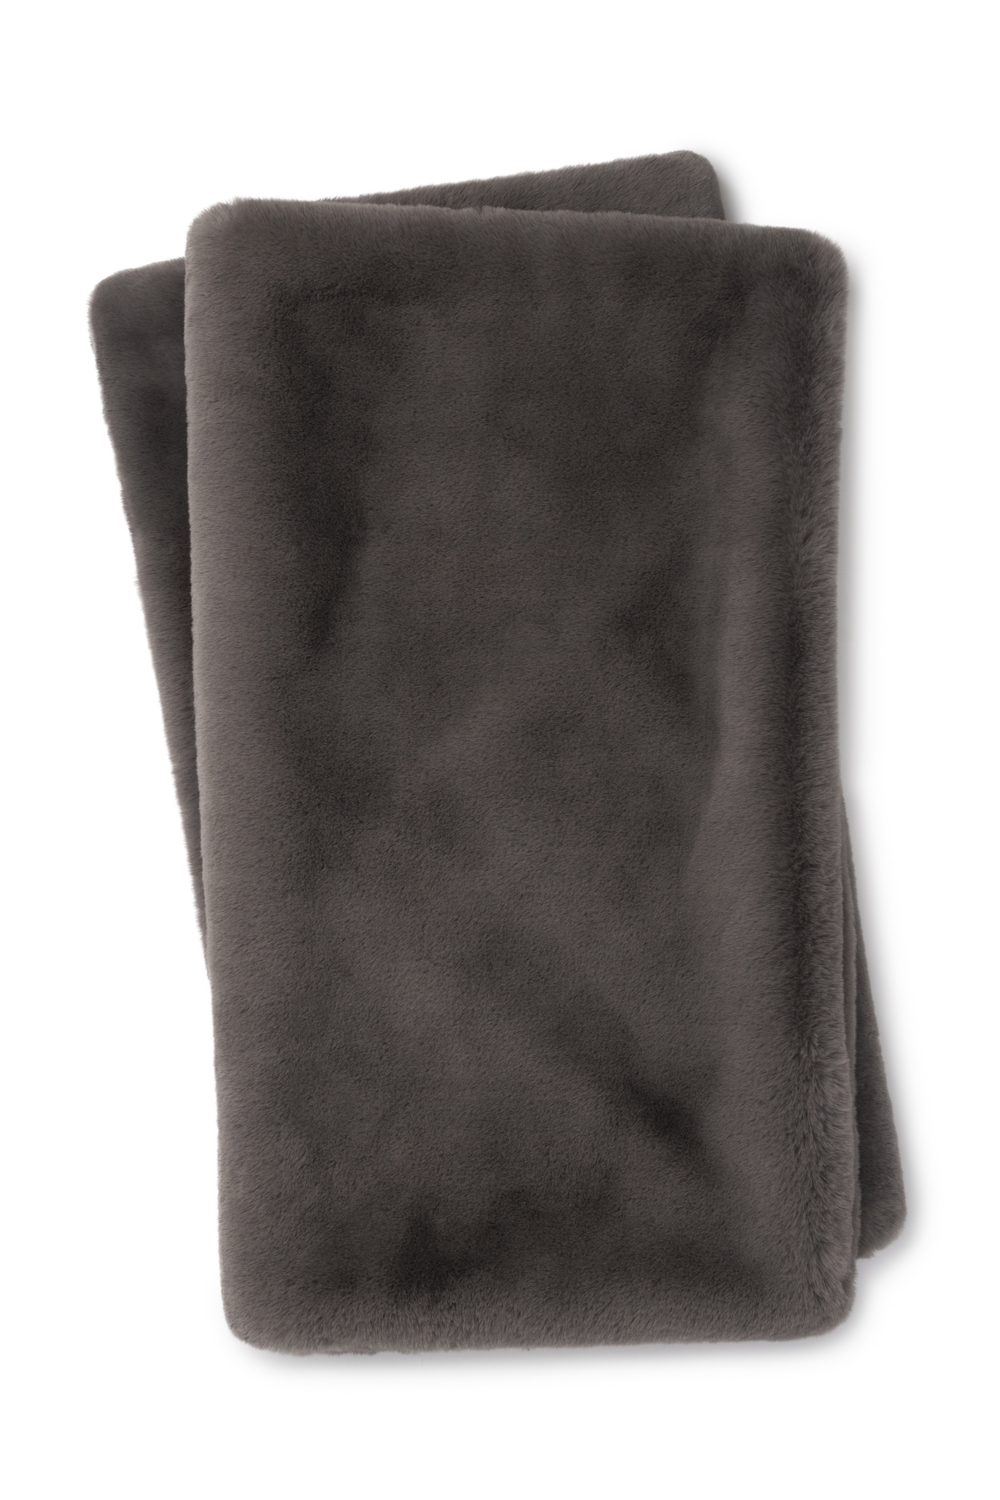 Loloi Rugs - Roger Rug (Charcoal)